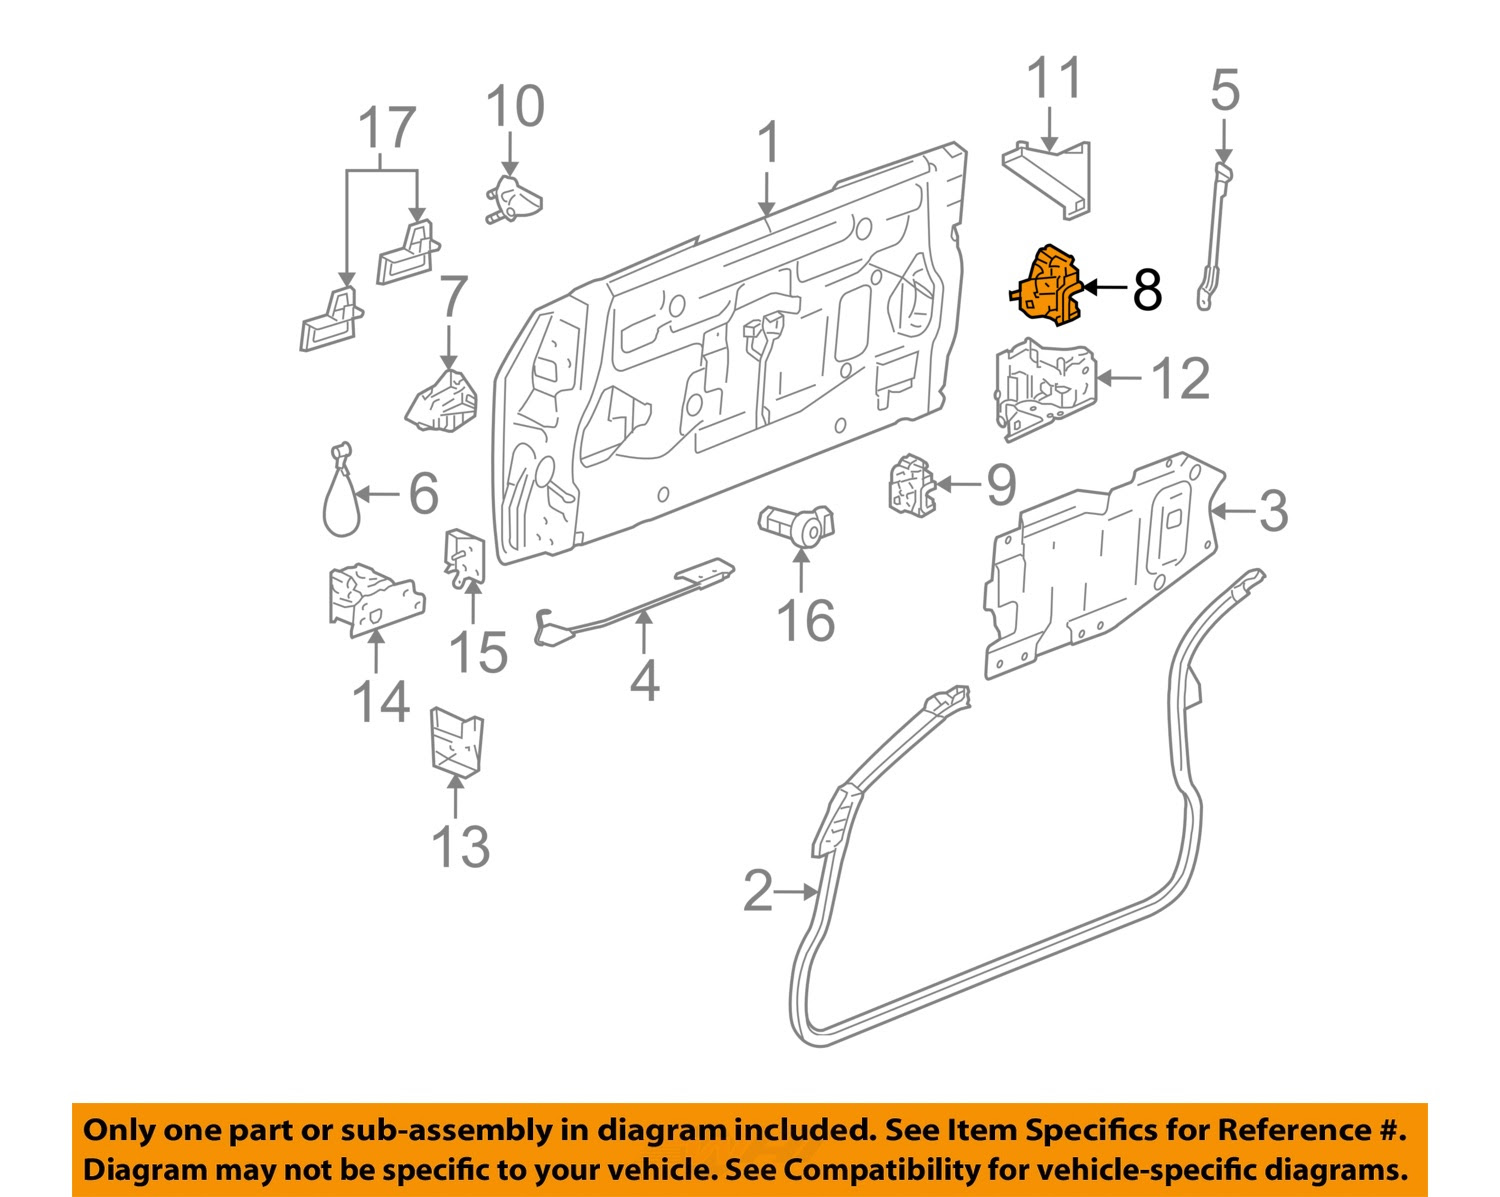 2002 Gmc Envoy Engine Wiring Diagram